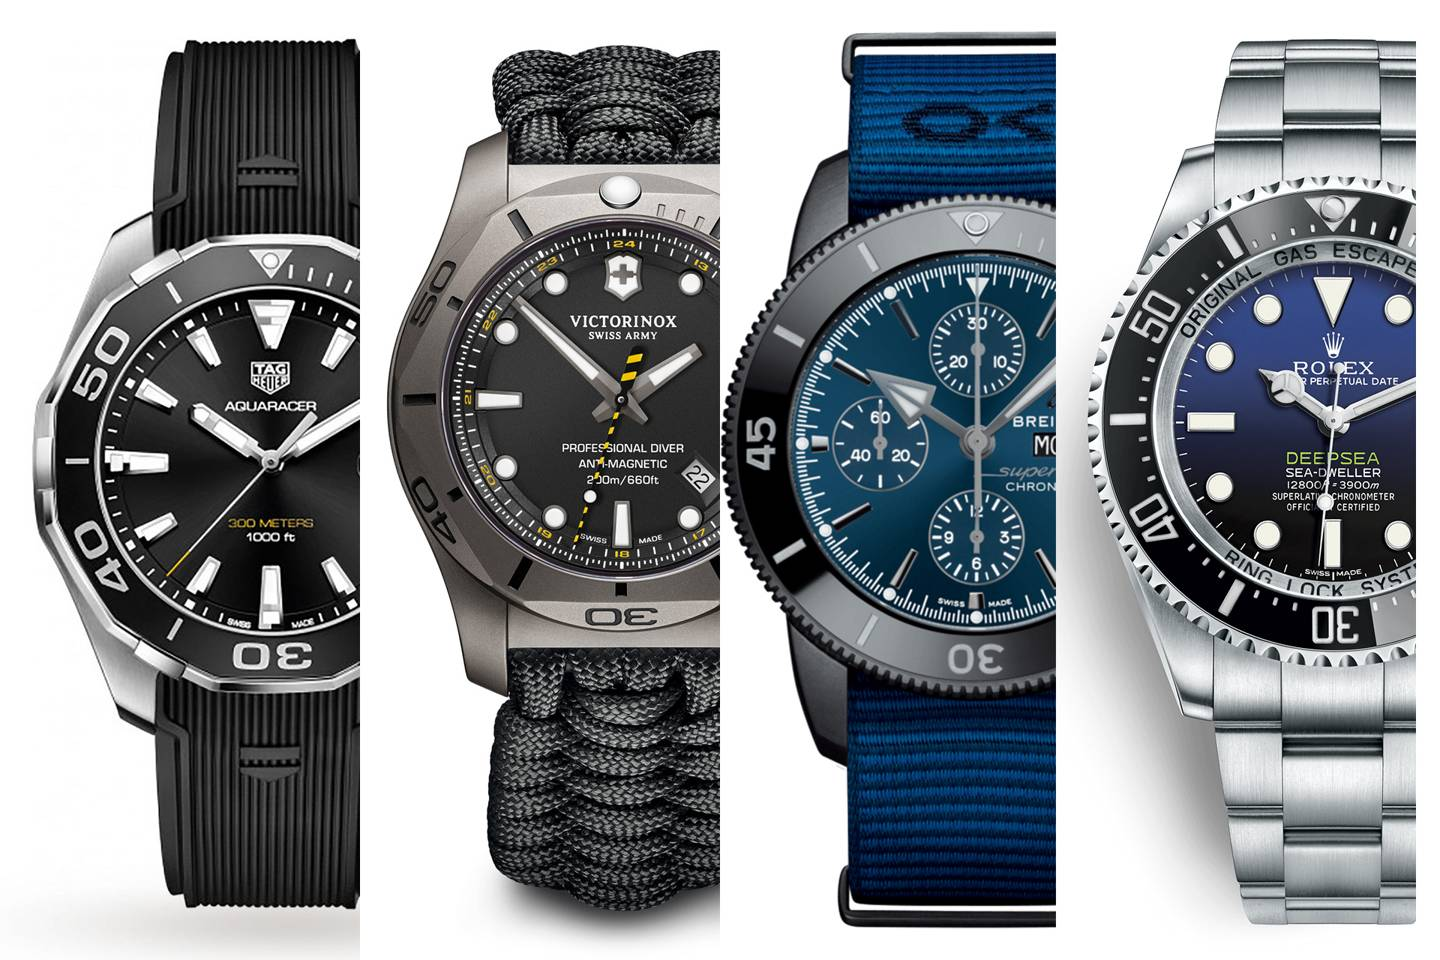 Best Men's Dive Watches For Taking A Plunge